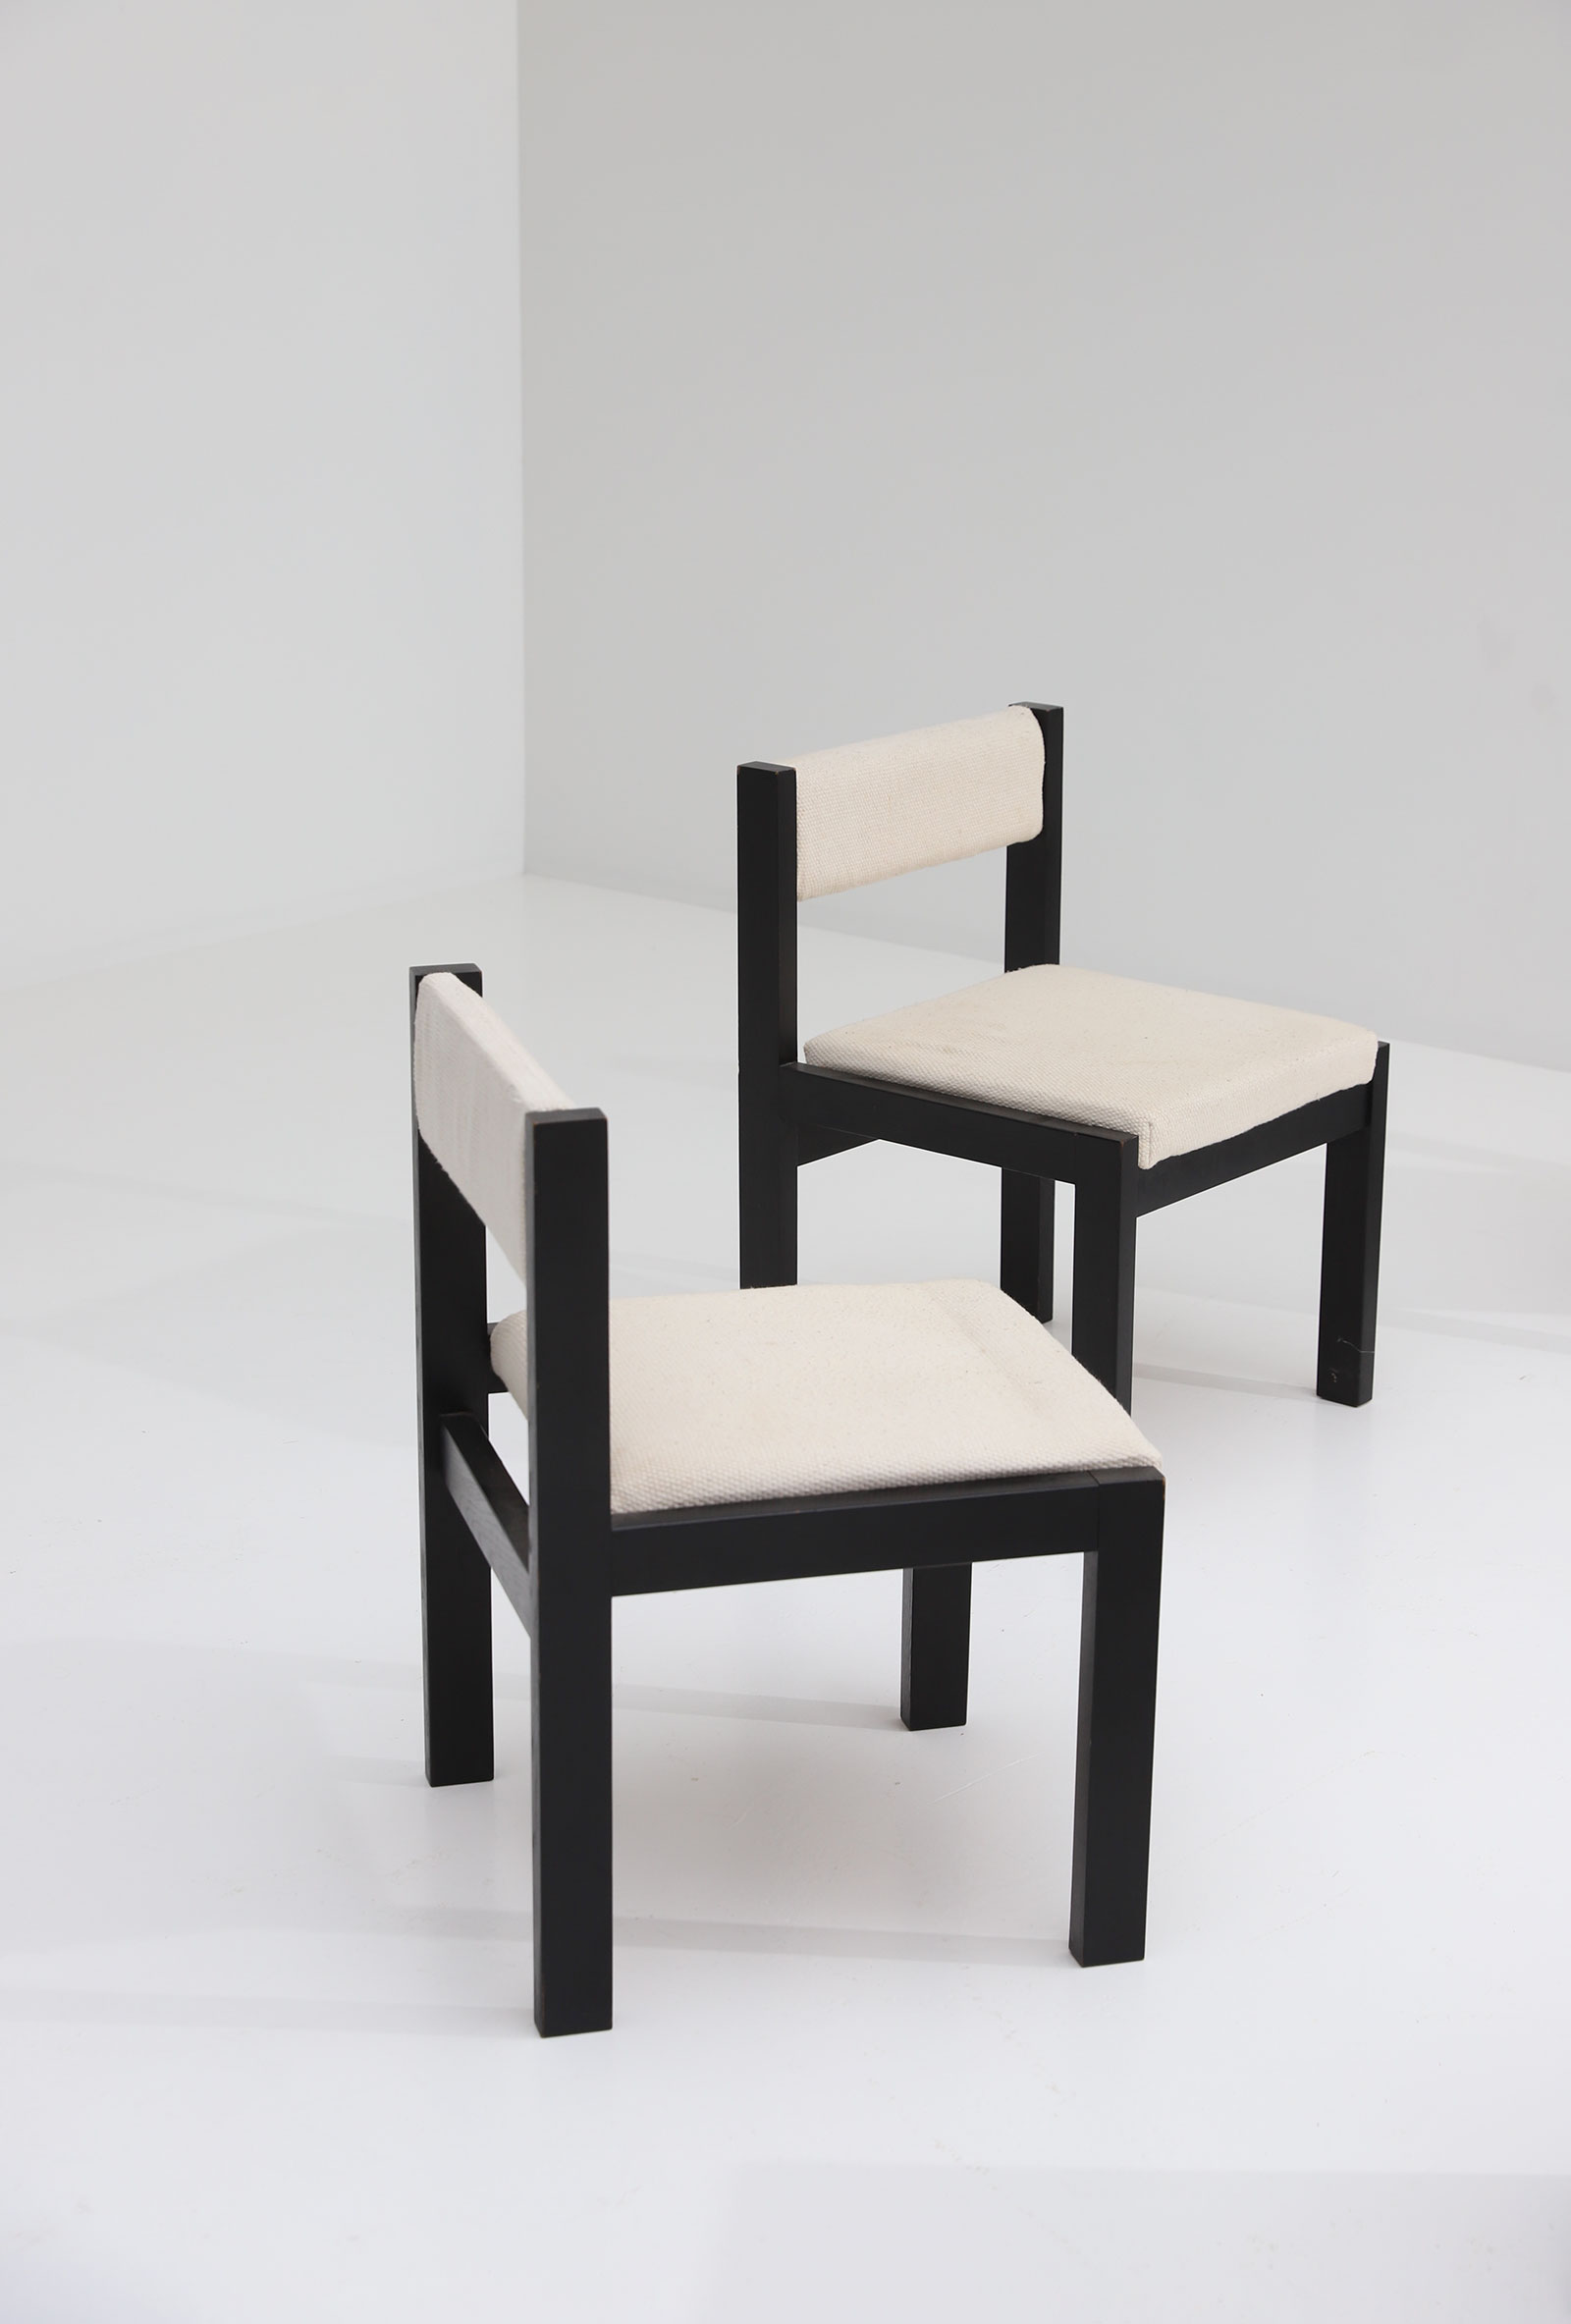 6 chairsimage 4